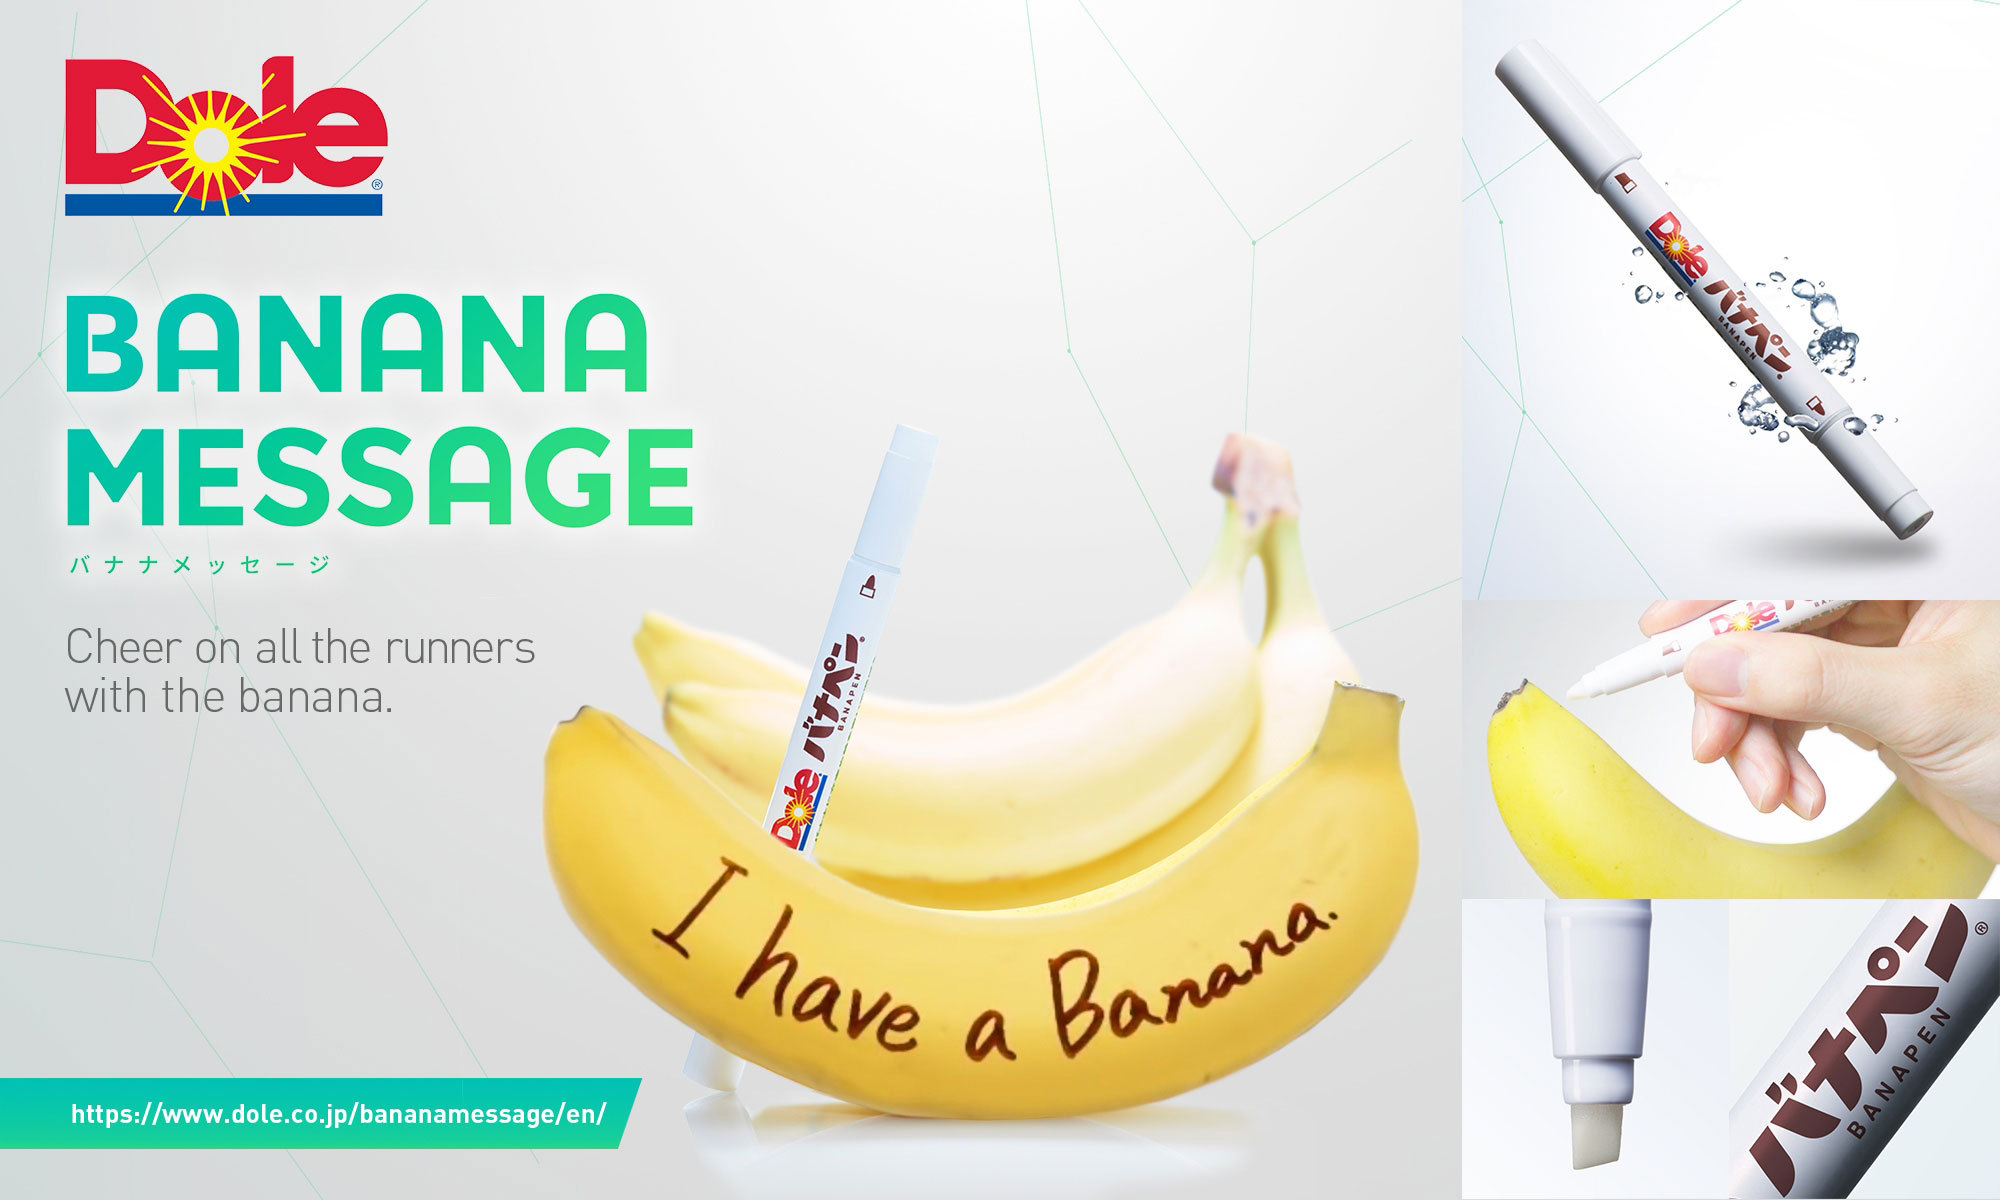 The Dole Banana Message Project Support Every Runner With A Message